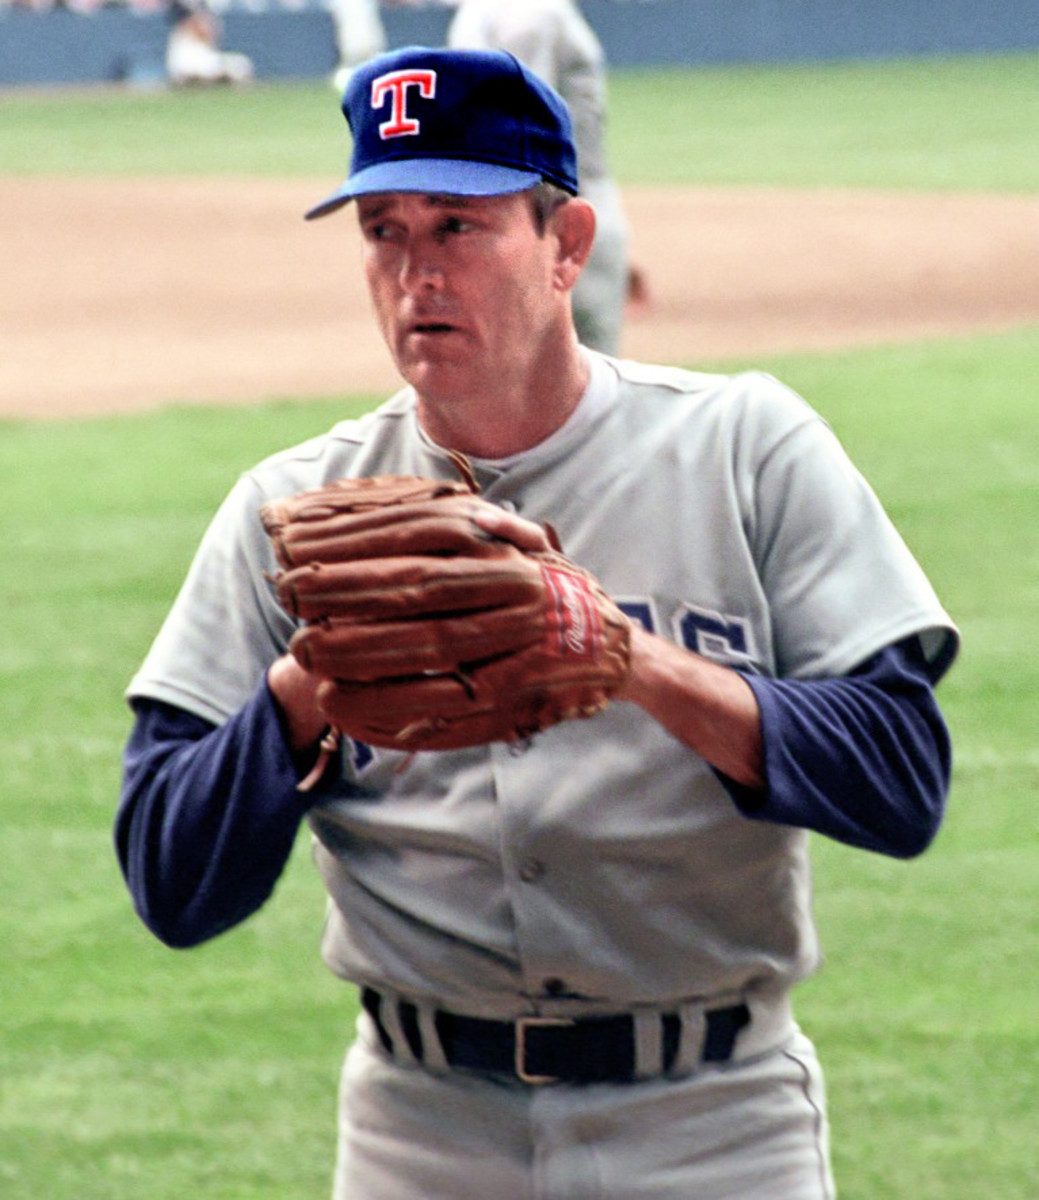 Nolan Ryan was known as a Texan. He was born in Refugio and eventually pitched for the Houston Astros and Texas Rangers during his 27-year career.